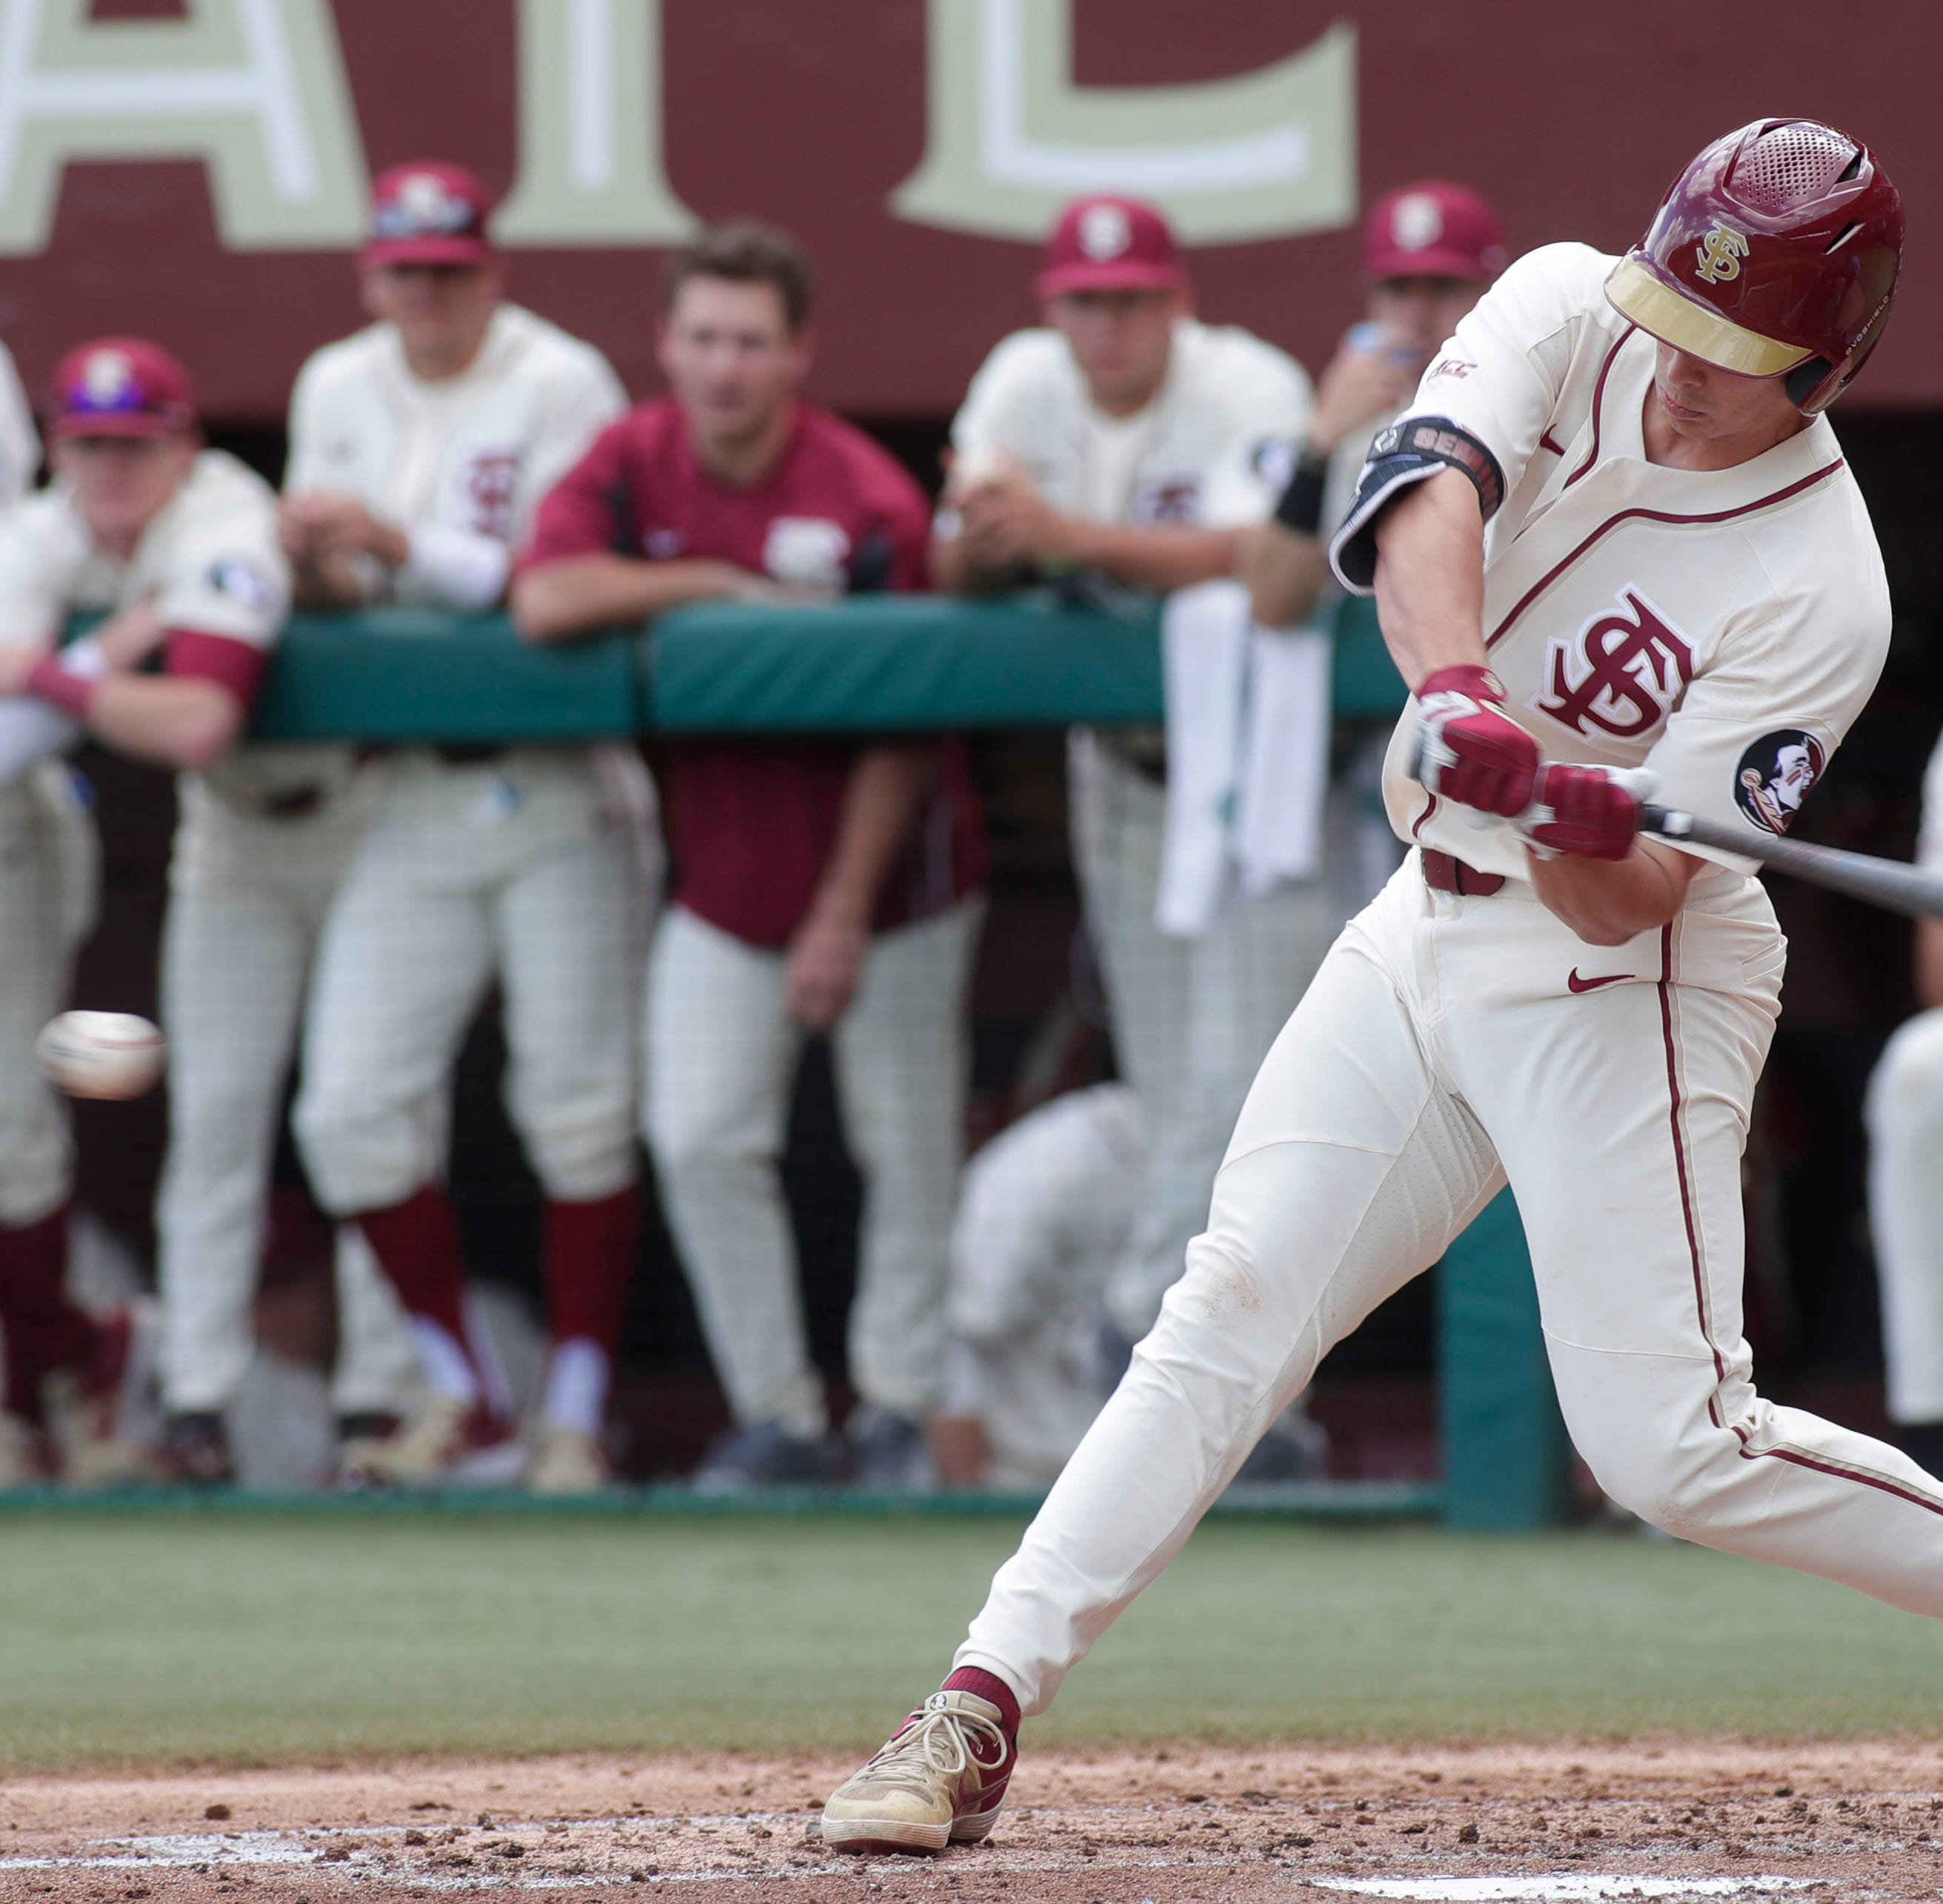 Florida State postseason update: May 7